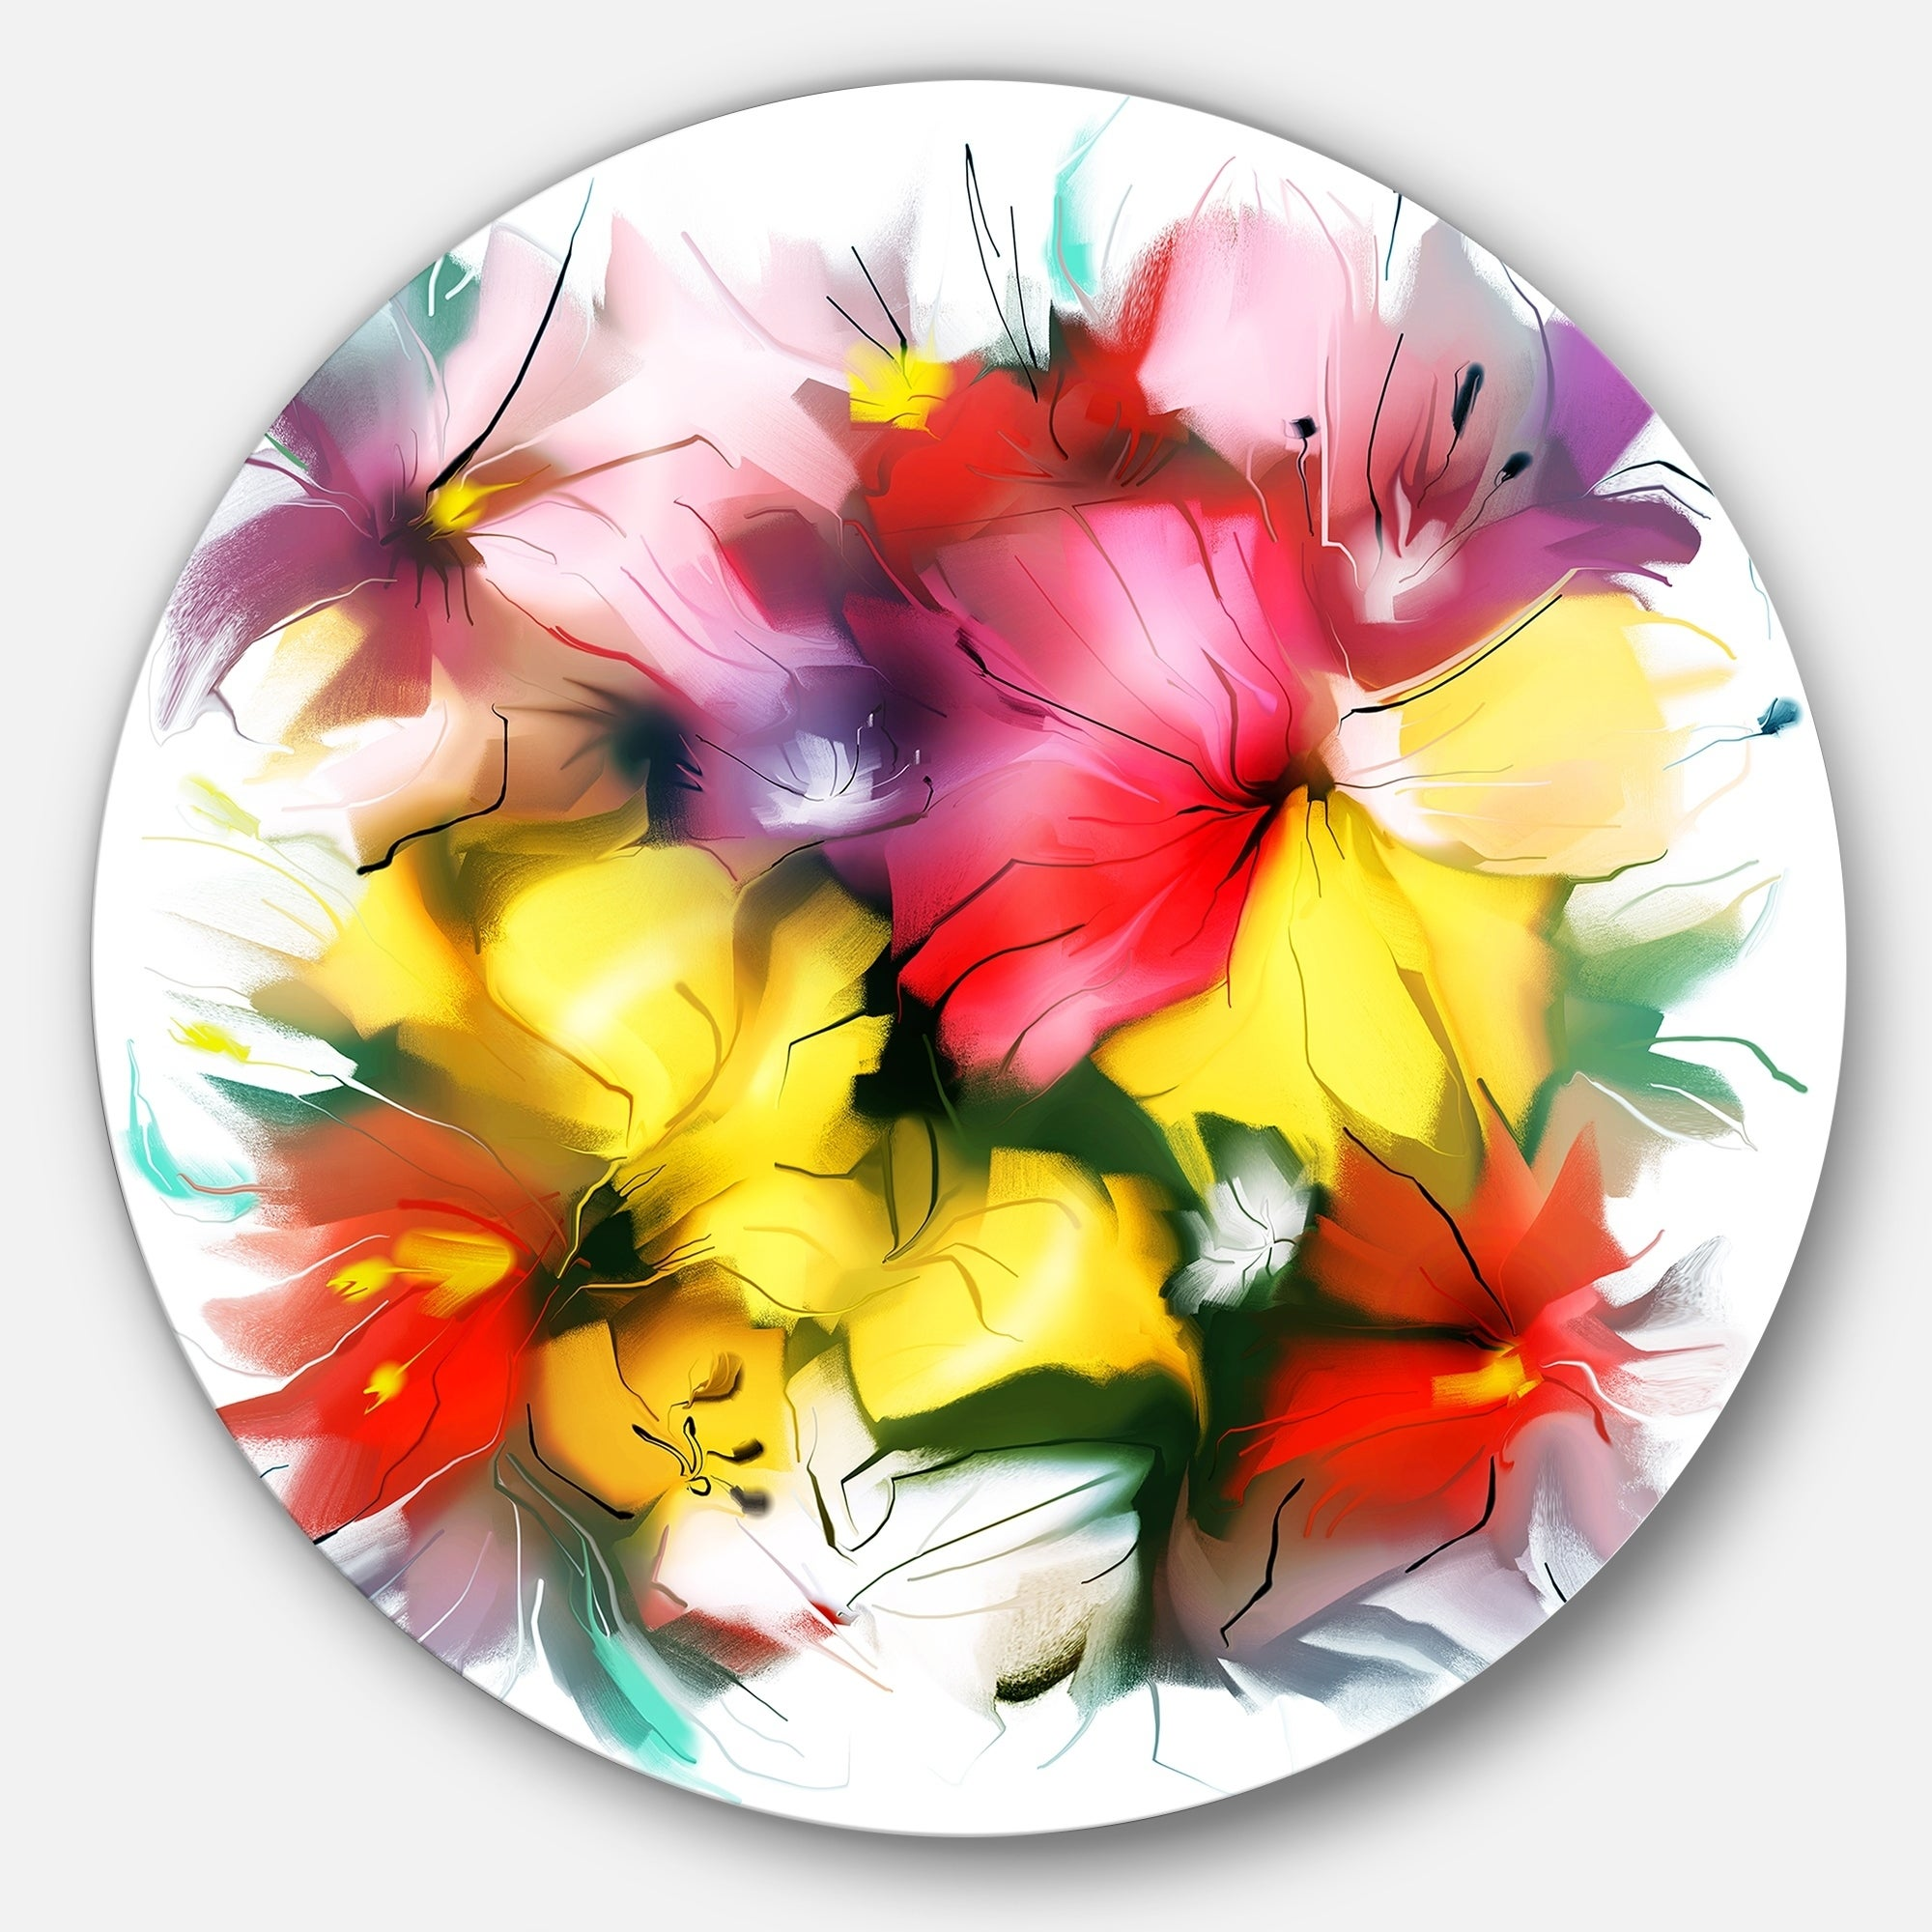 Disc of 23 23 H x 23 W x 1 D 1P Flowers Round Metal Wall Art Designart Blooming Red Rose on White